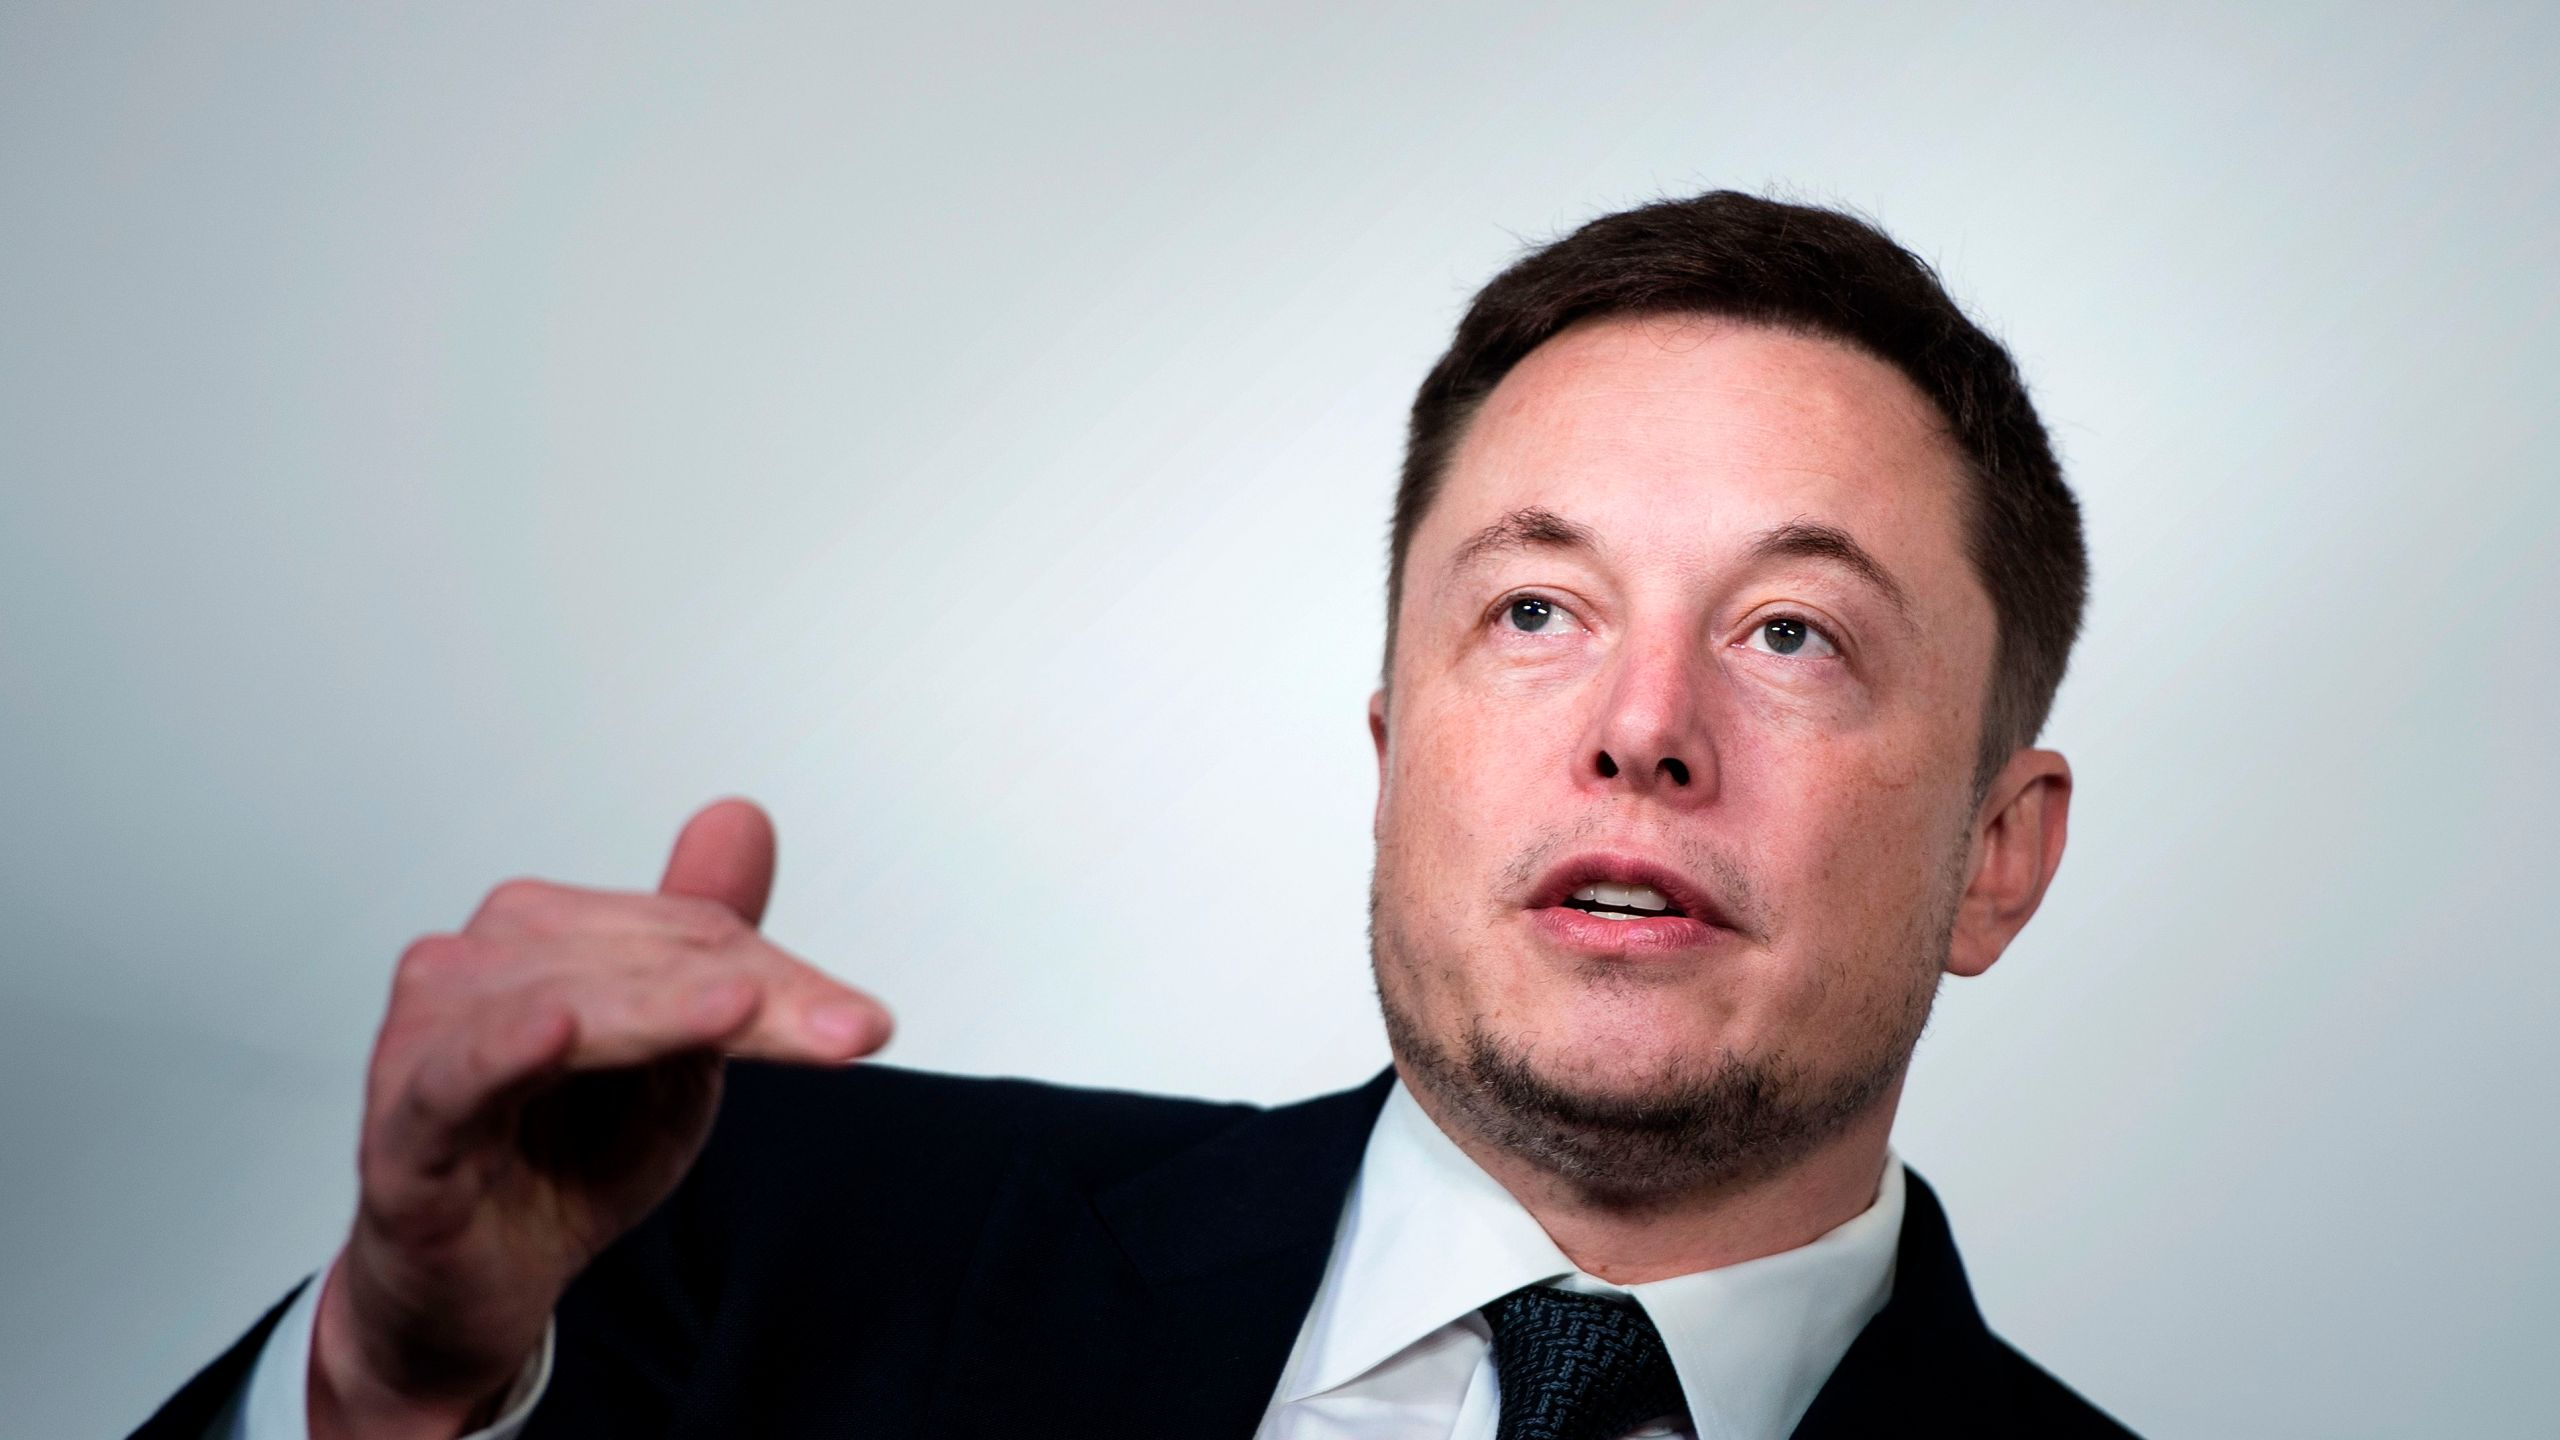 Elon Musk, CEO of SpaceX and Tesla, speaks during the International Space Station Research and Development Conference at the Omni Shoreham Hotel July 19, 2017 in Washington, DC. (Credit: BRENDAN SMIALOWSKI/AFP/Getty Images)